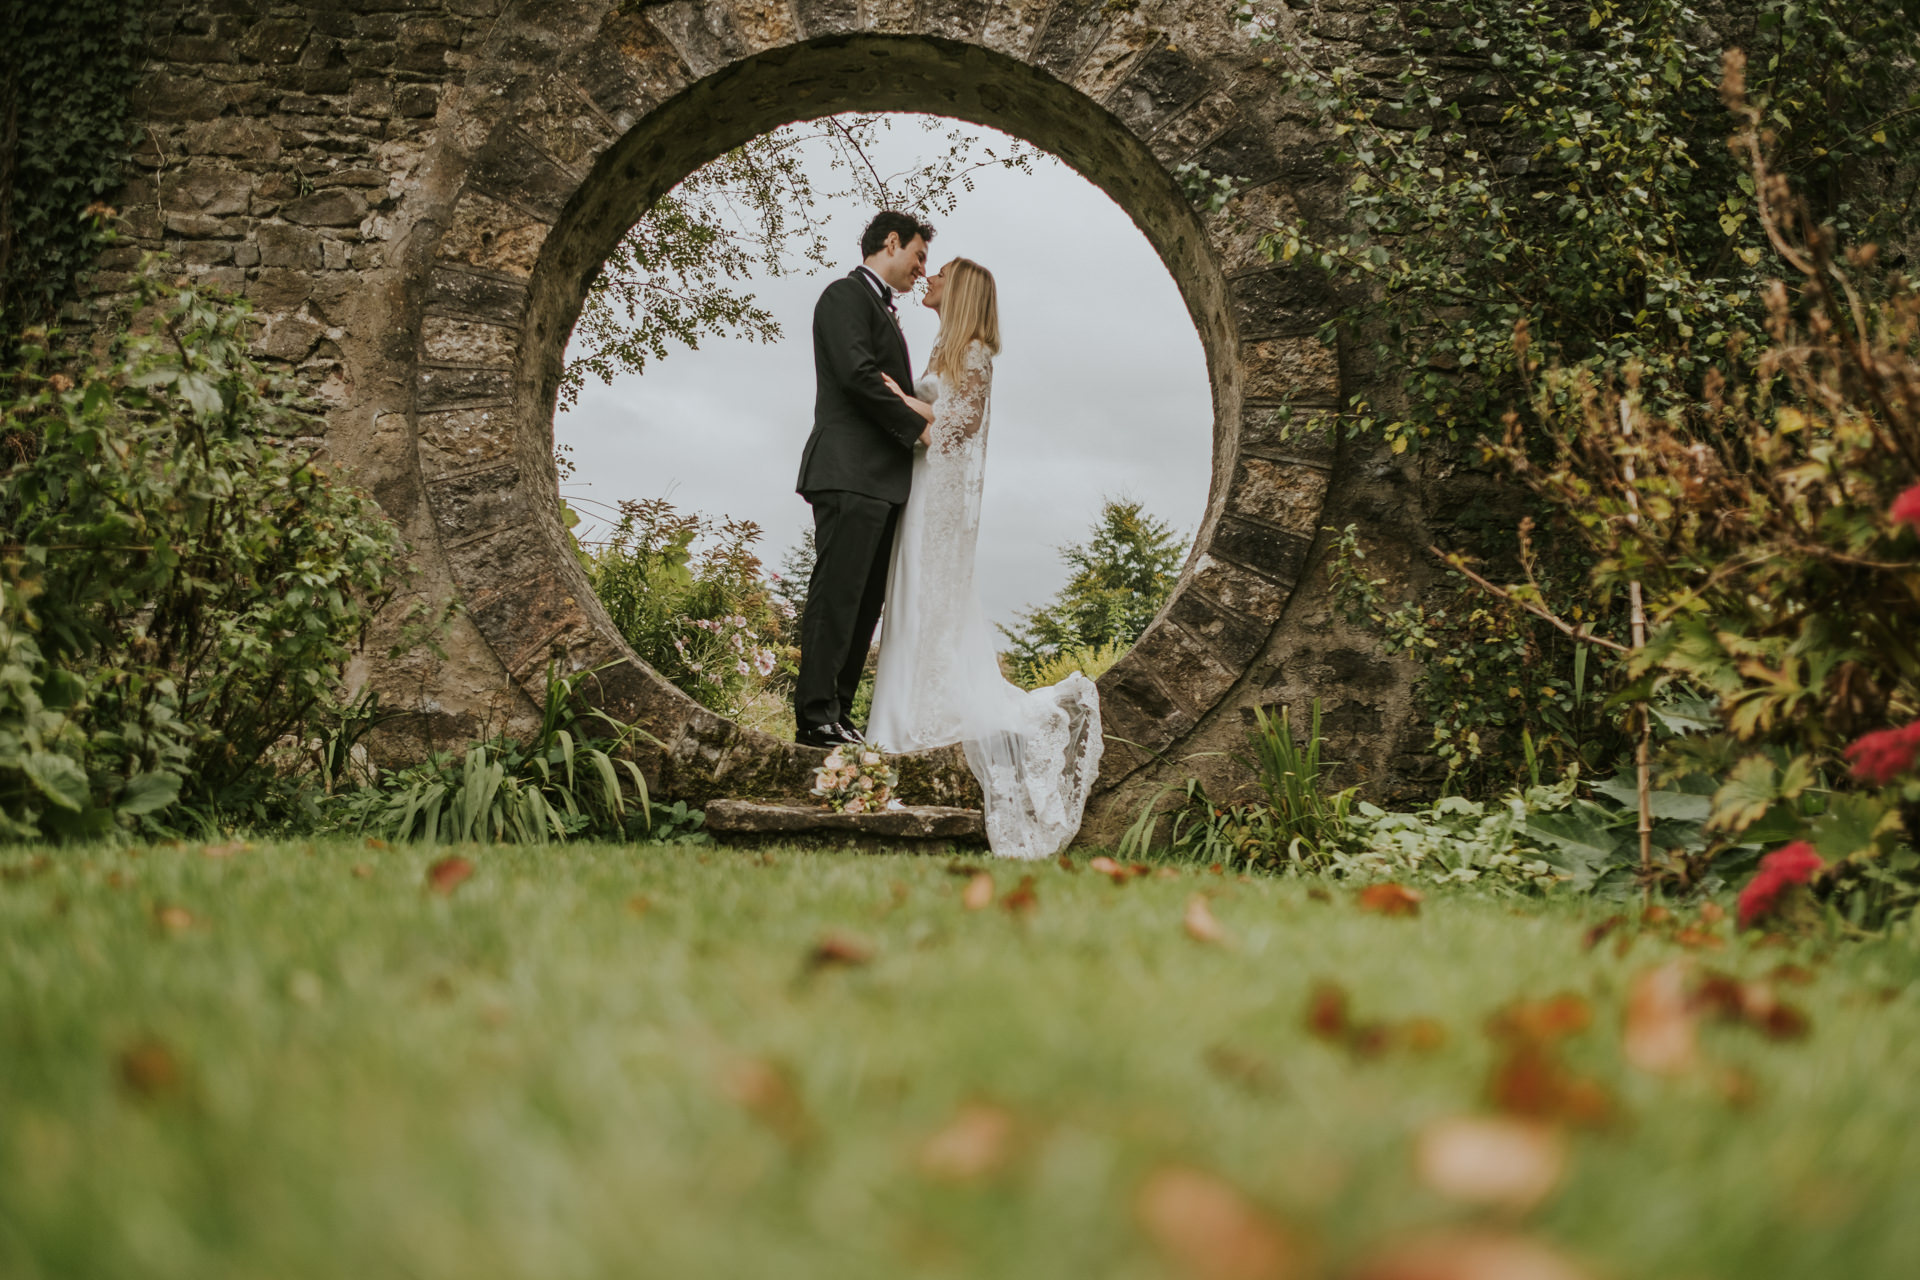 Mount-juliet-estate-wedding